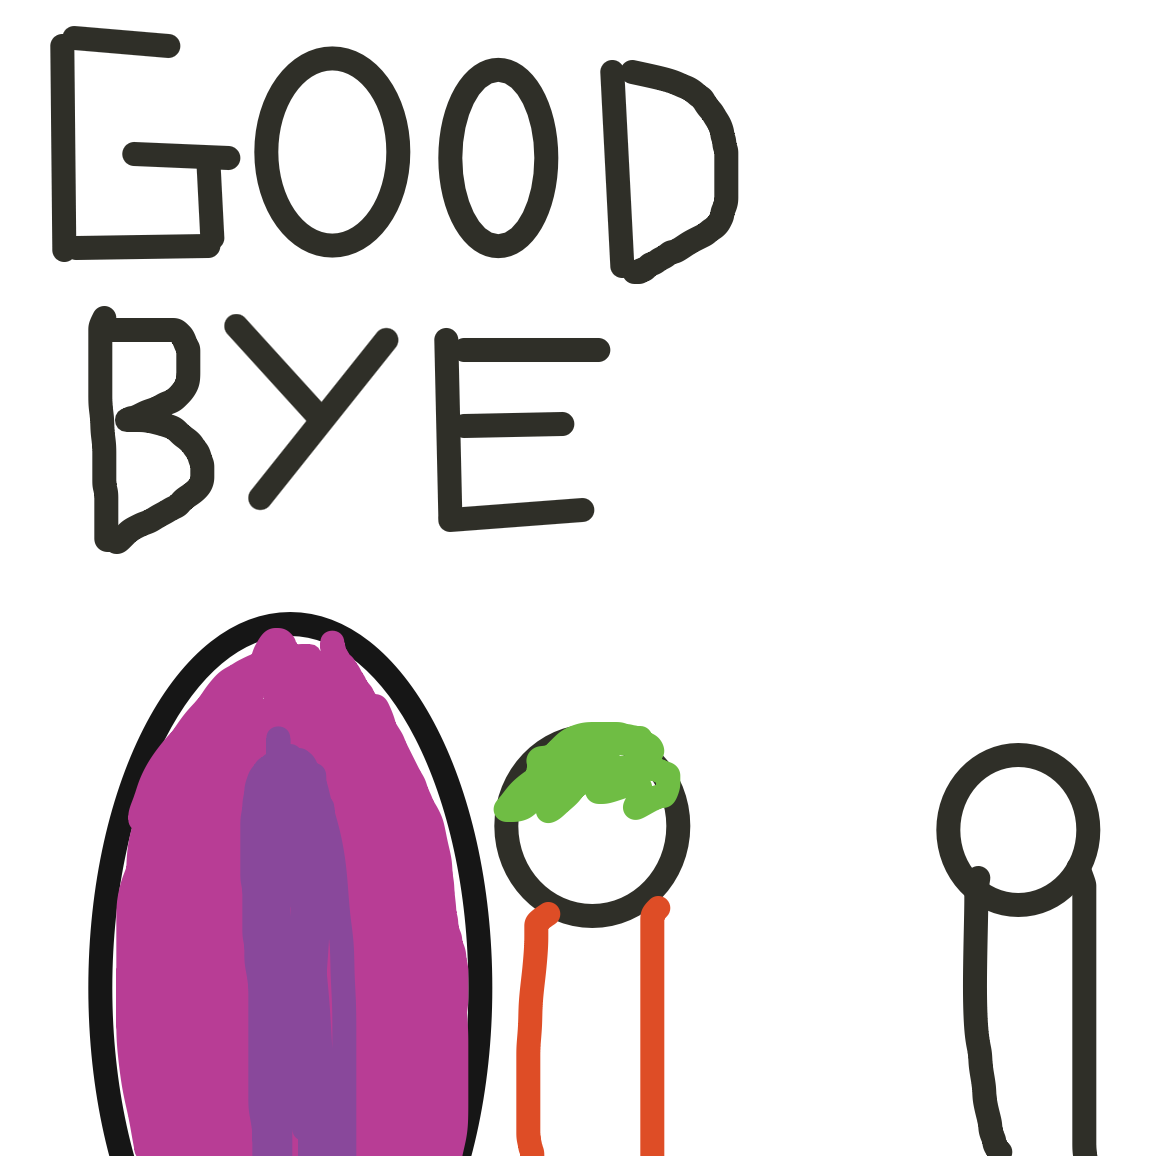 Well then good bye brother - Online Drawing Game Comic Strip Panel by Jack